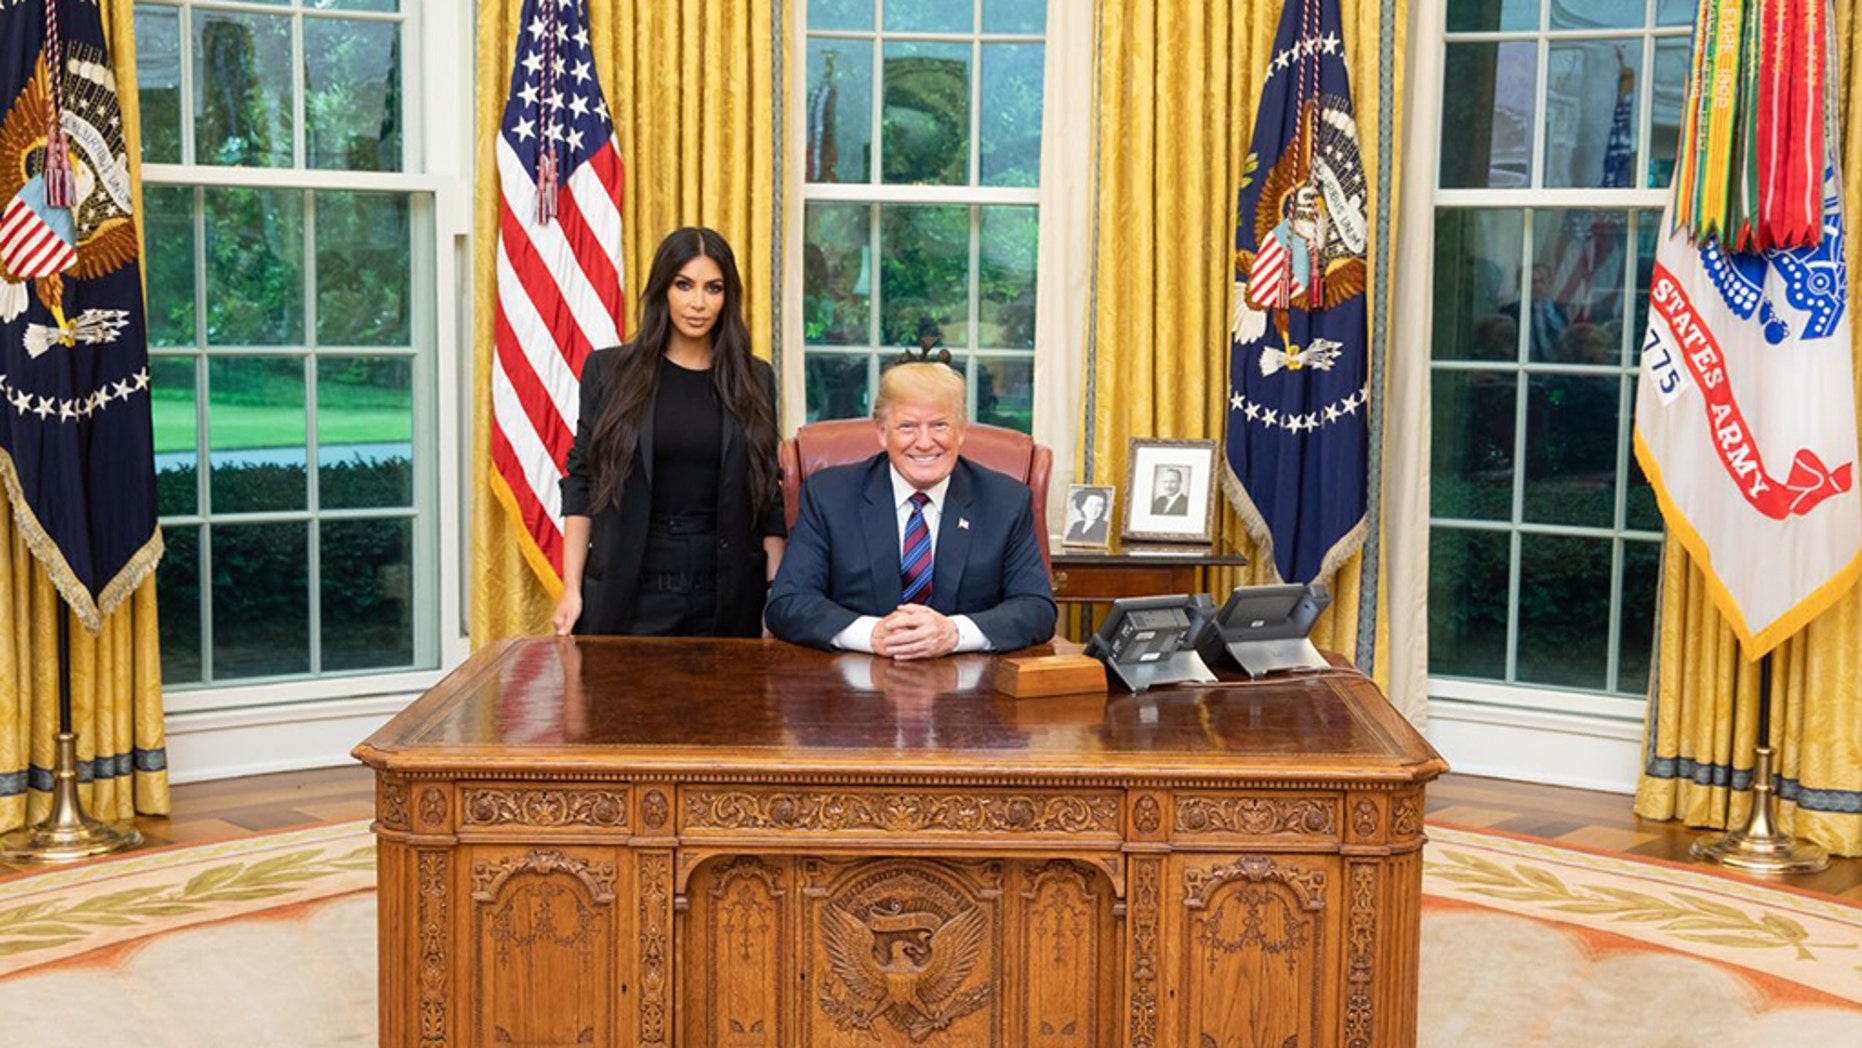 Kim Kardashian met with Donald Trump in the Oval Office to talk about pardoning the Alice Marie Johnson who had served 20 years in prison for crimes connected to a local drug ring.